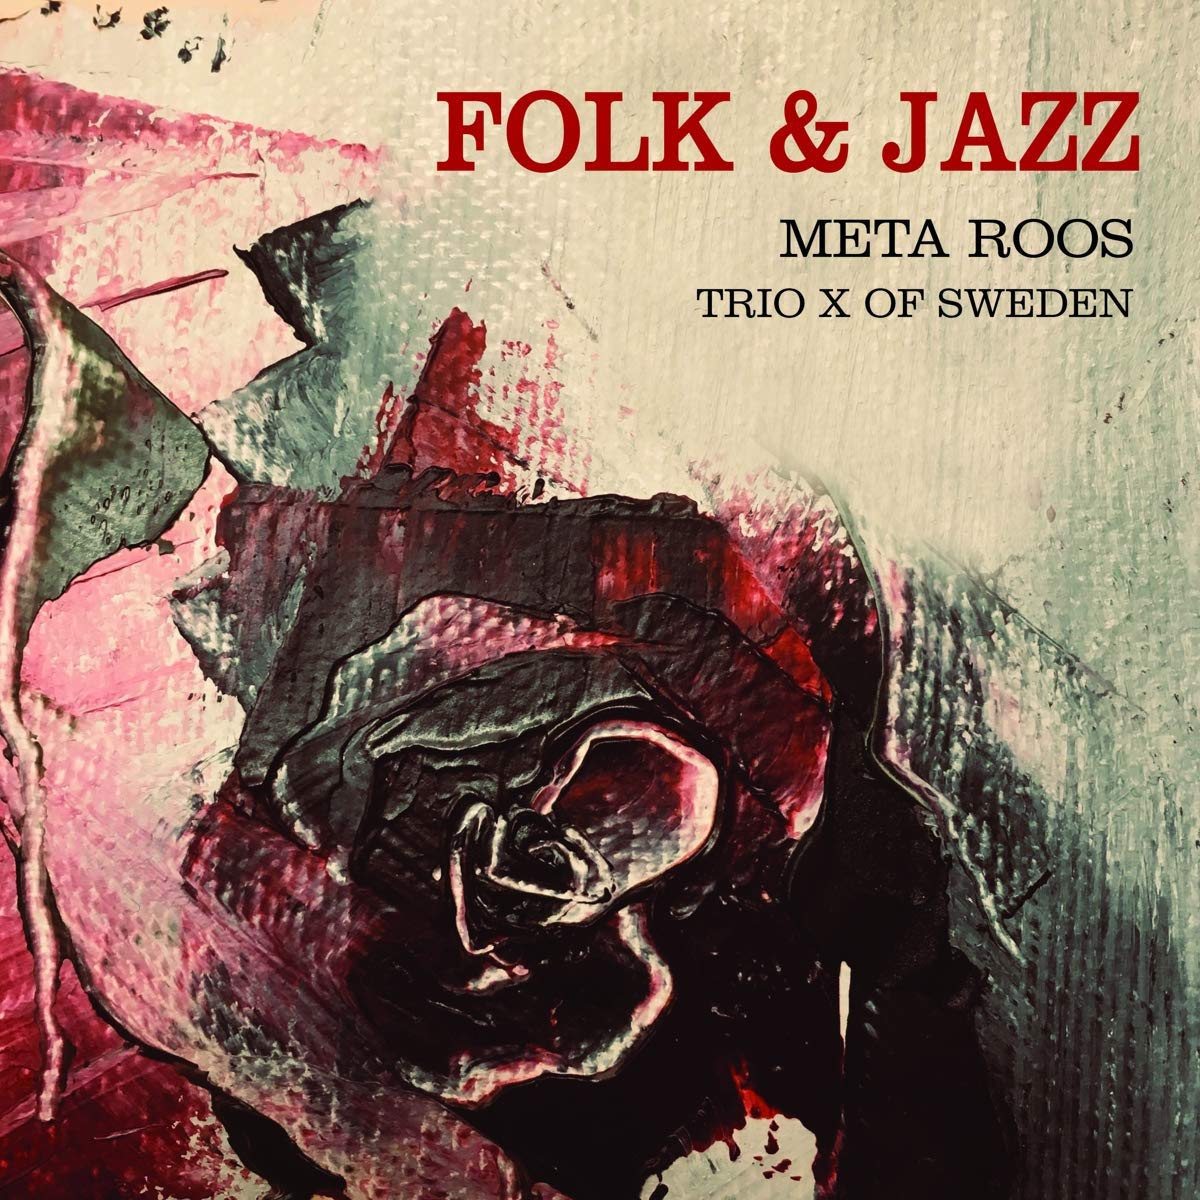 TRIO X (OF SWEDEN) - Meta Roos & Trio X of Sweden : Folk & Jazz cover